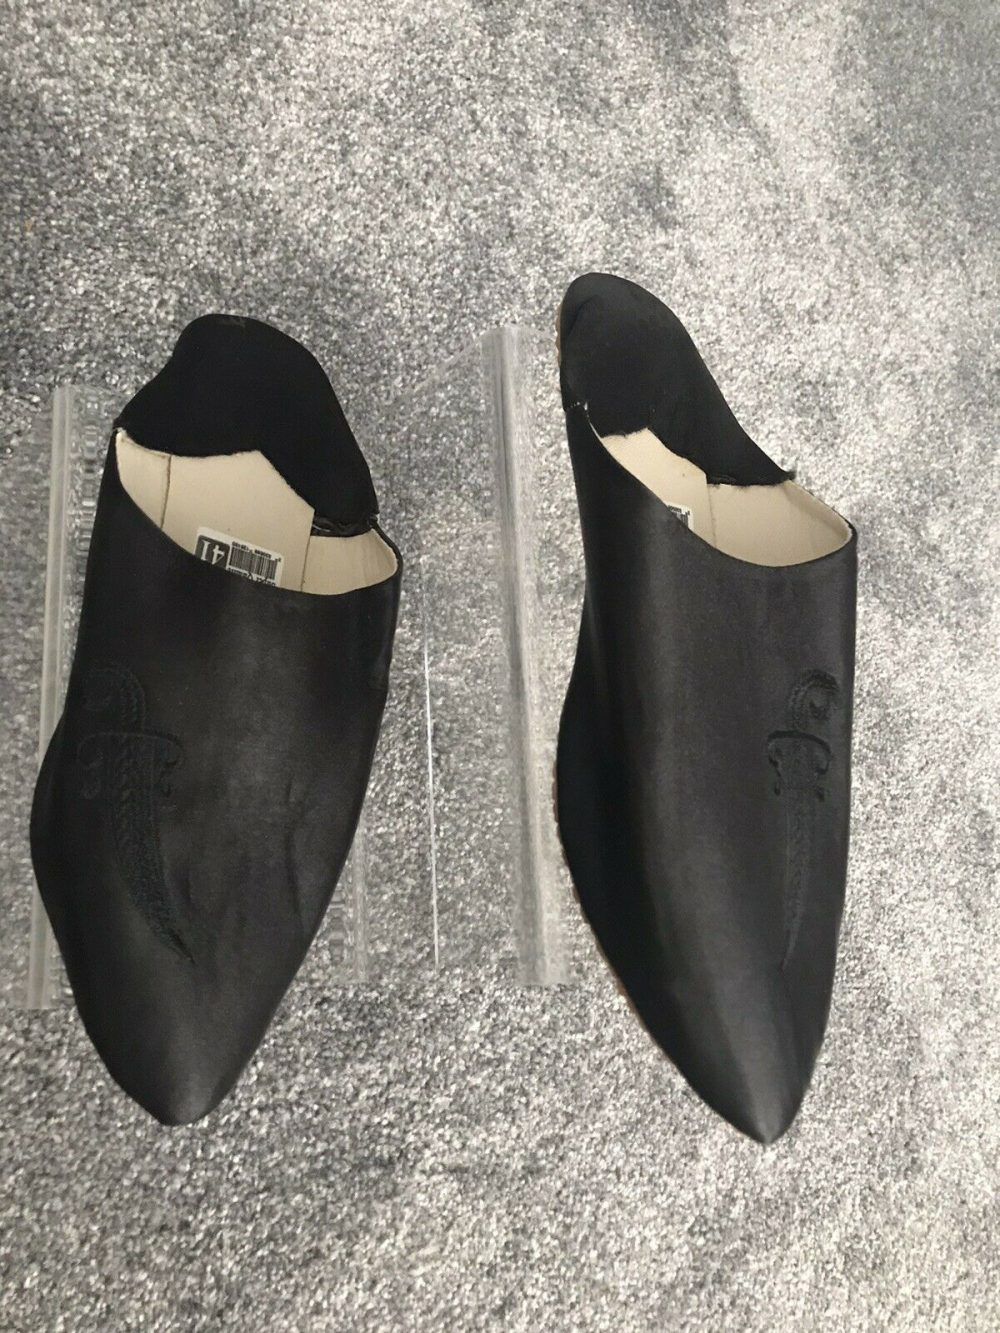 WOMENS MOROCCAN LEATHER SUEDE POINTY POINTED BABOUCHE SLIPPERS SHEEPSKIN SLIDES